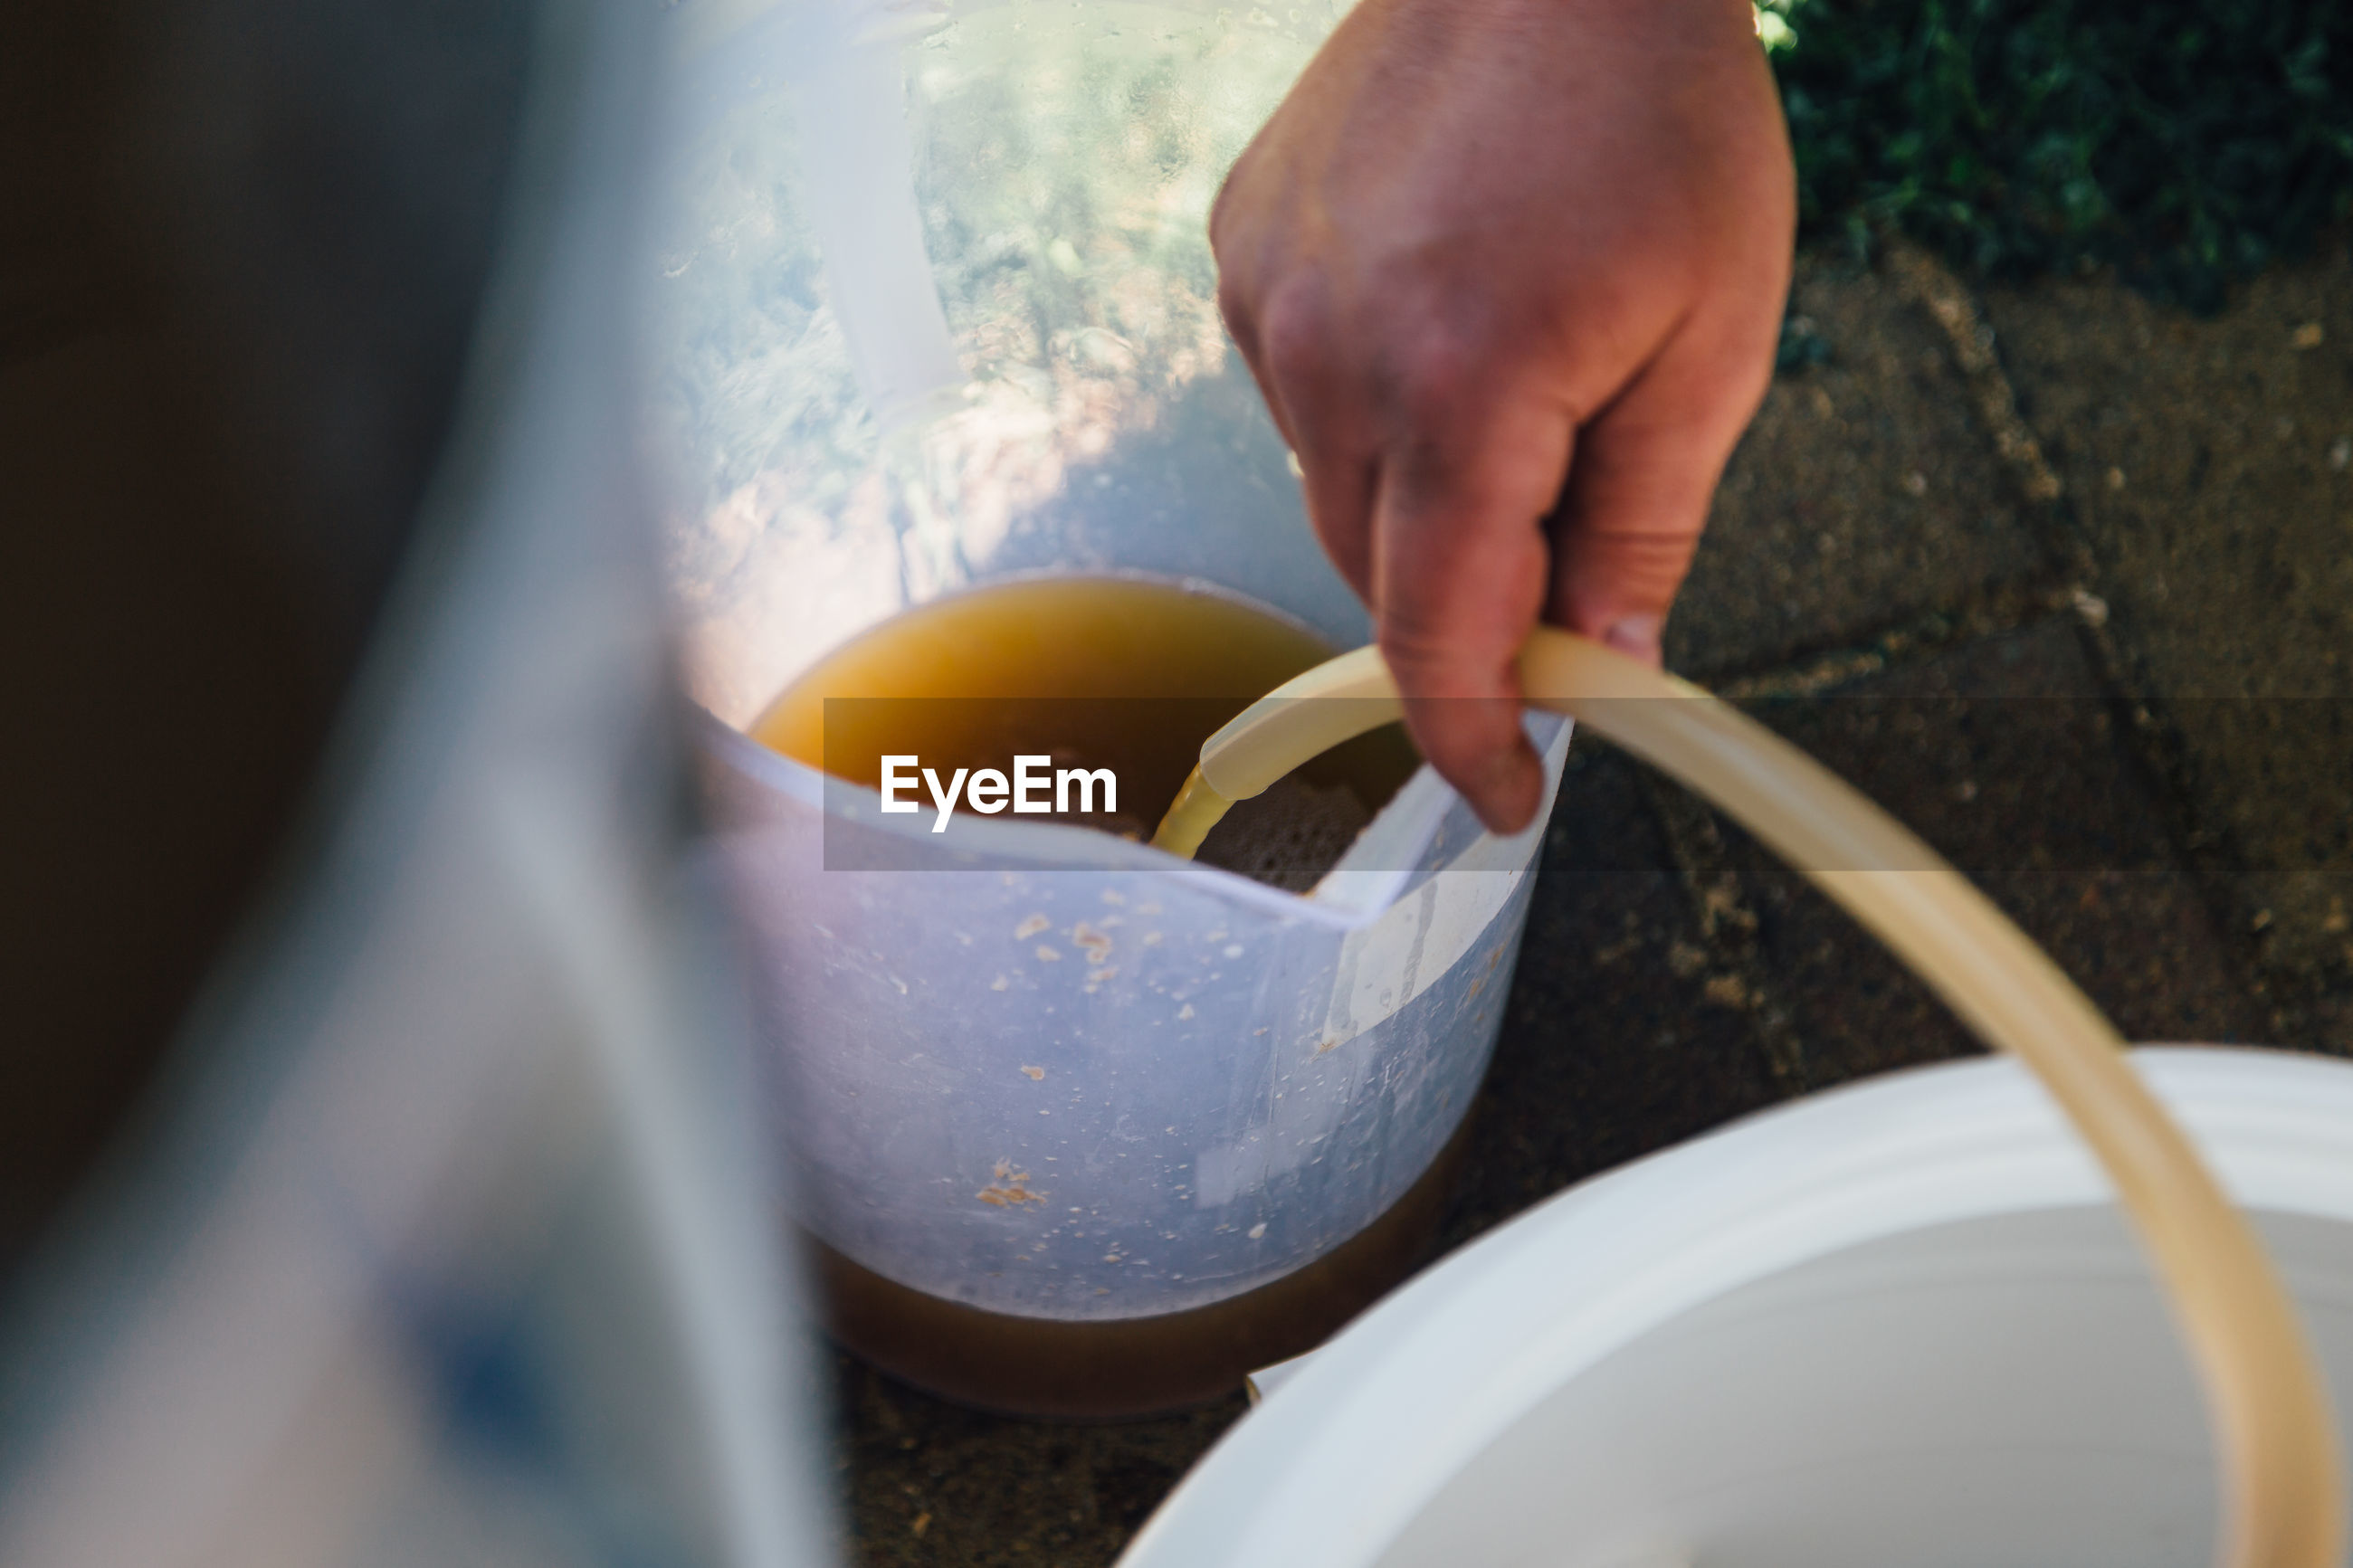 Midsection of person preparing food in bowl